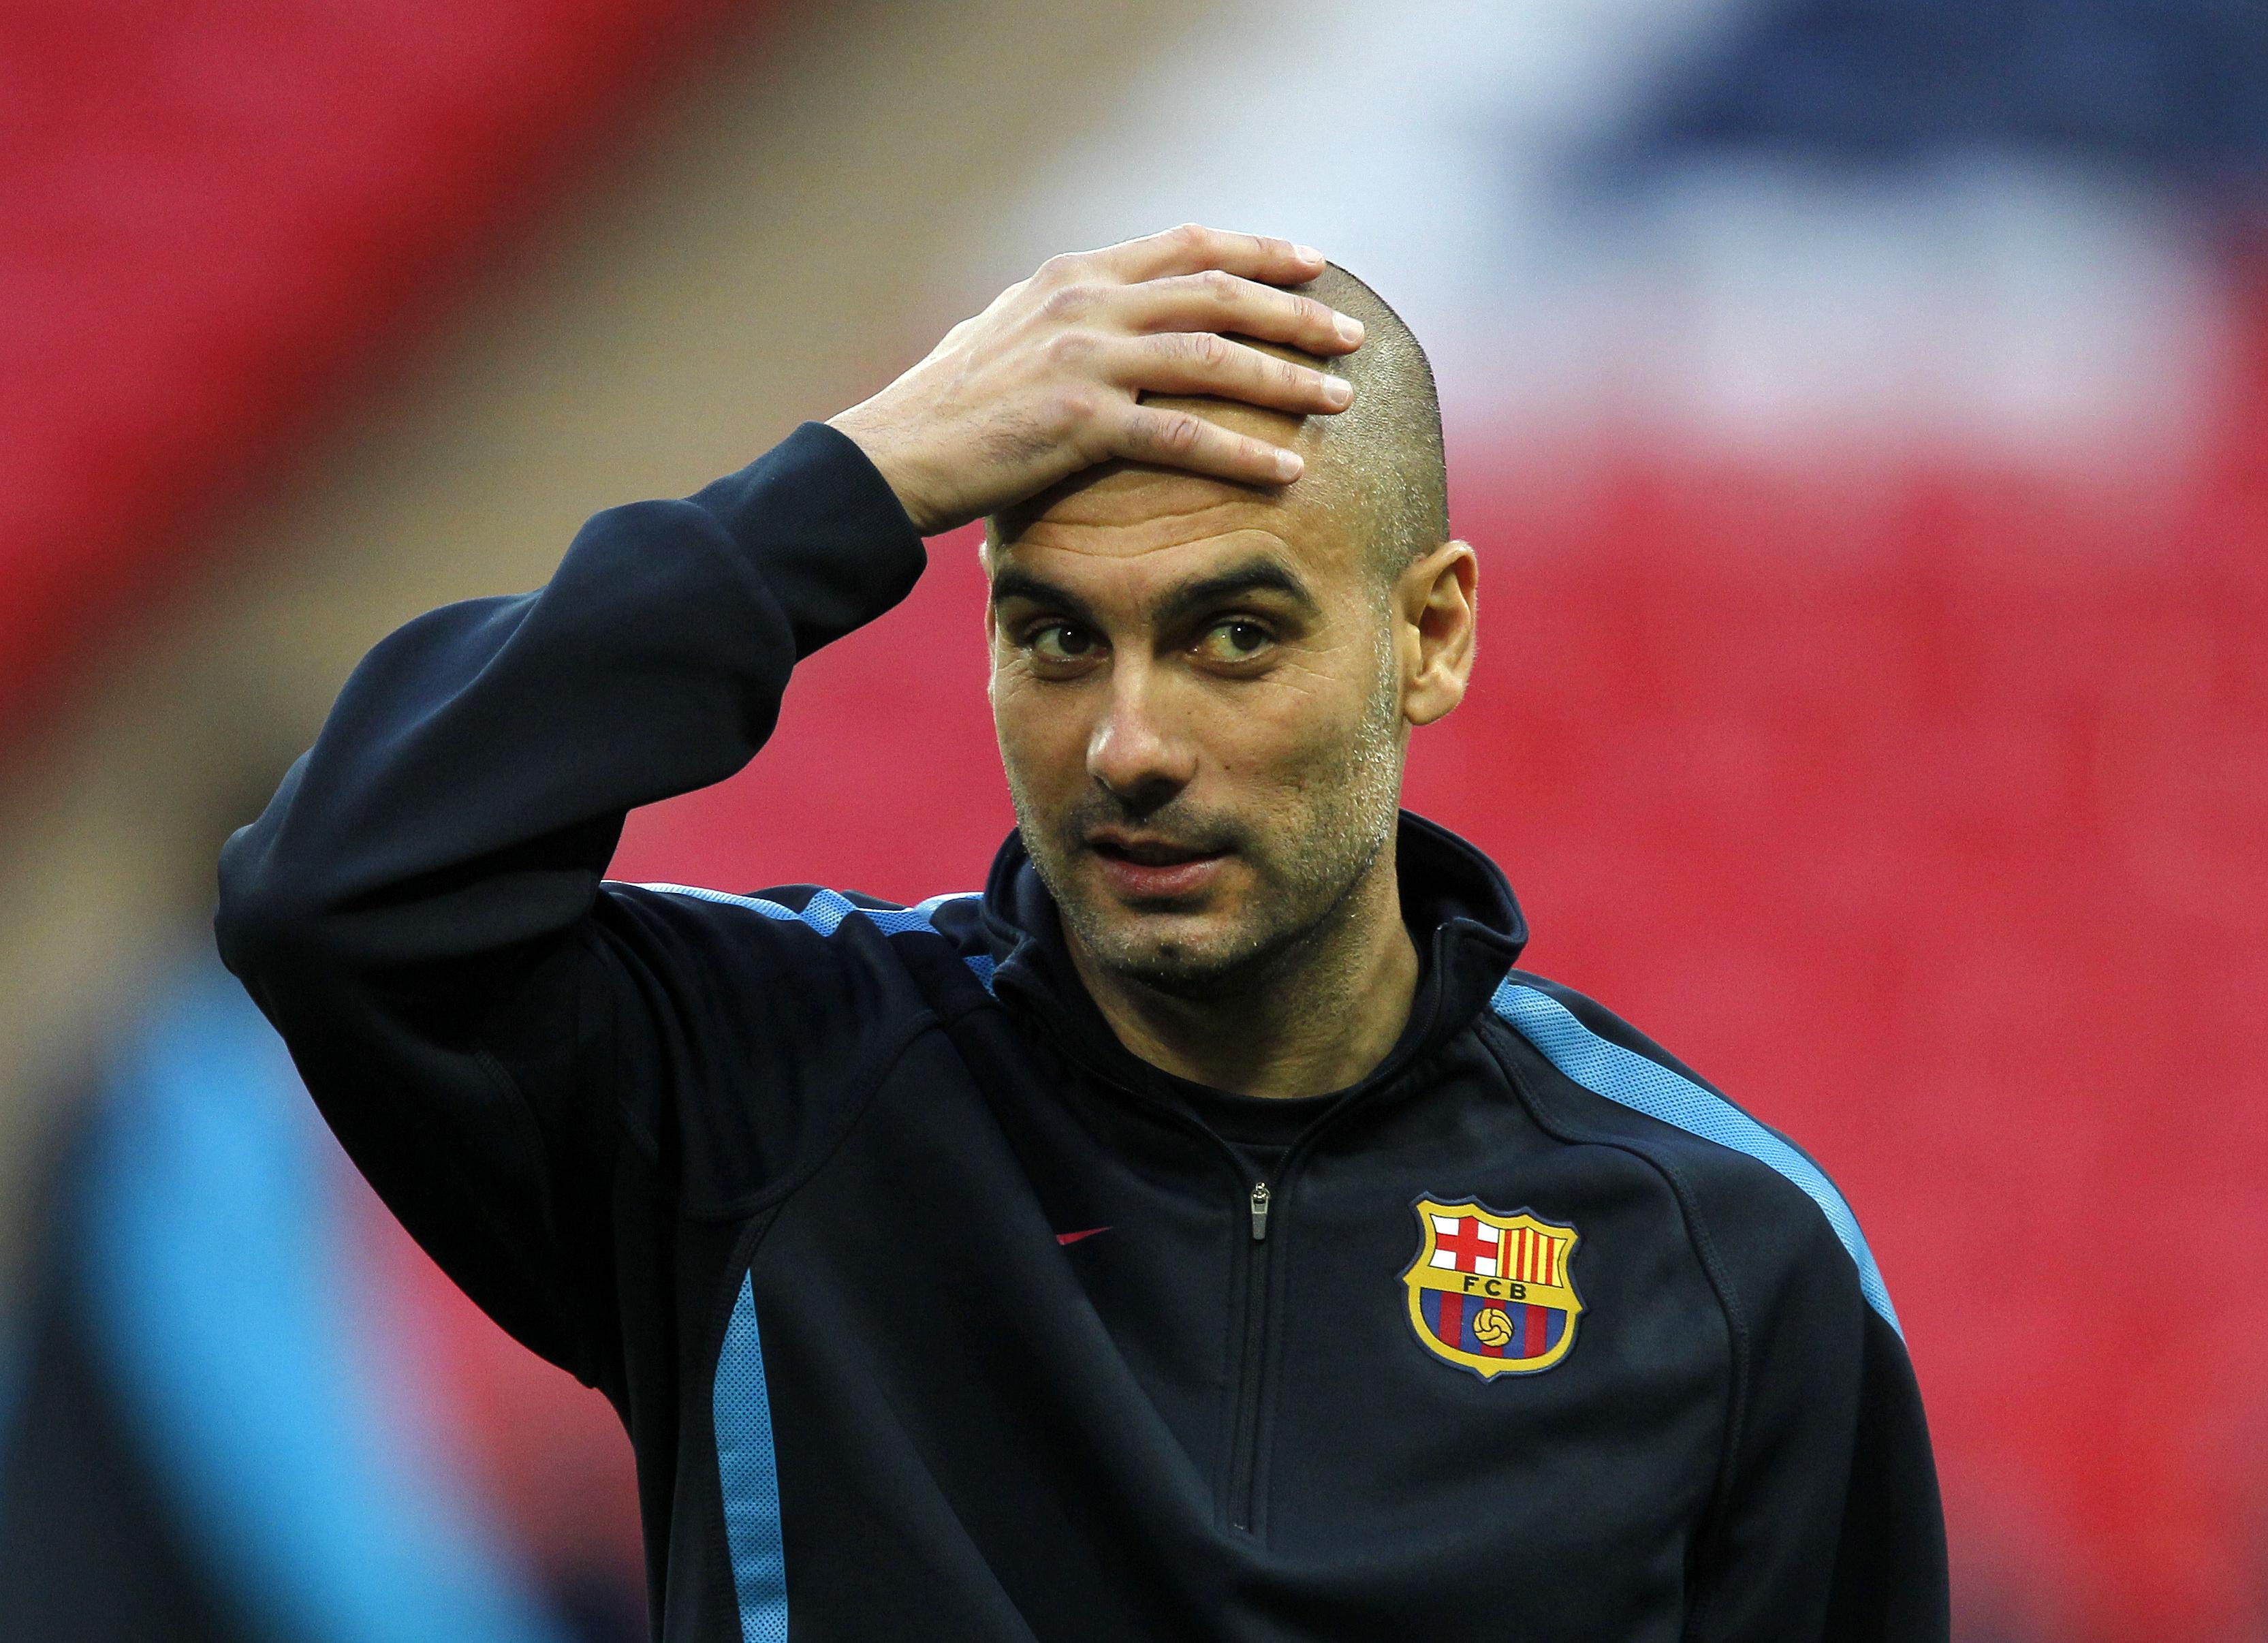 Pep Guardiola was ultimately given the job at Barcelona